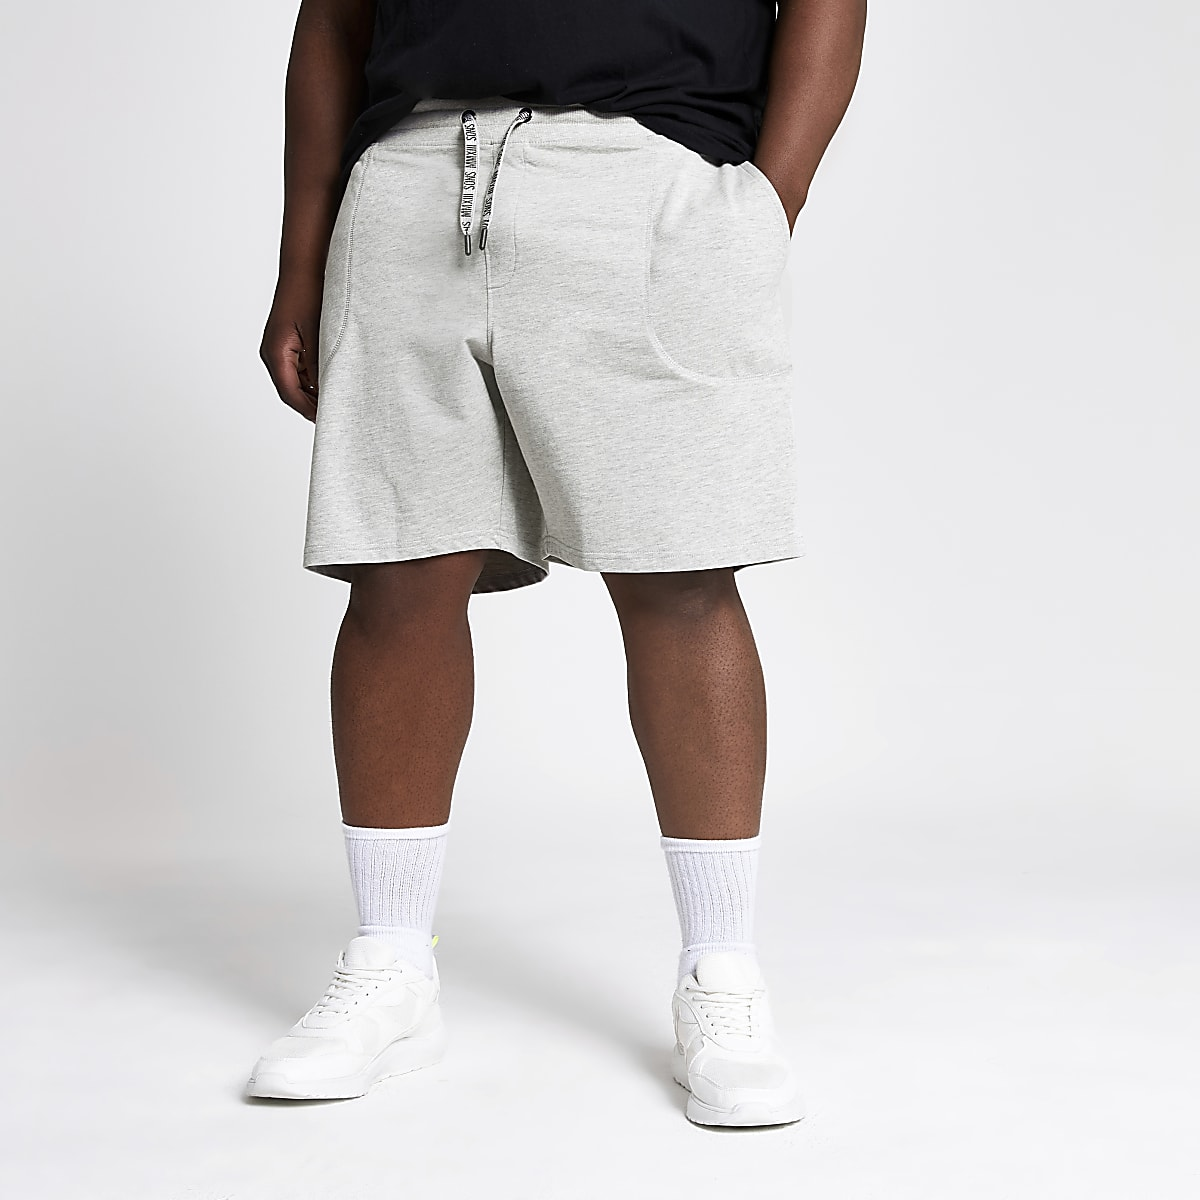 Only & Sons Big and Tall grey jersey shorts